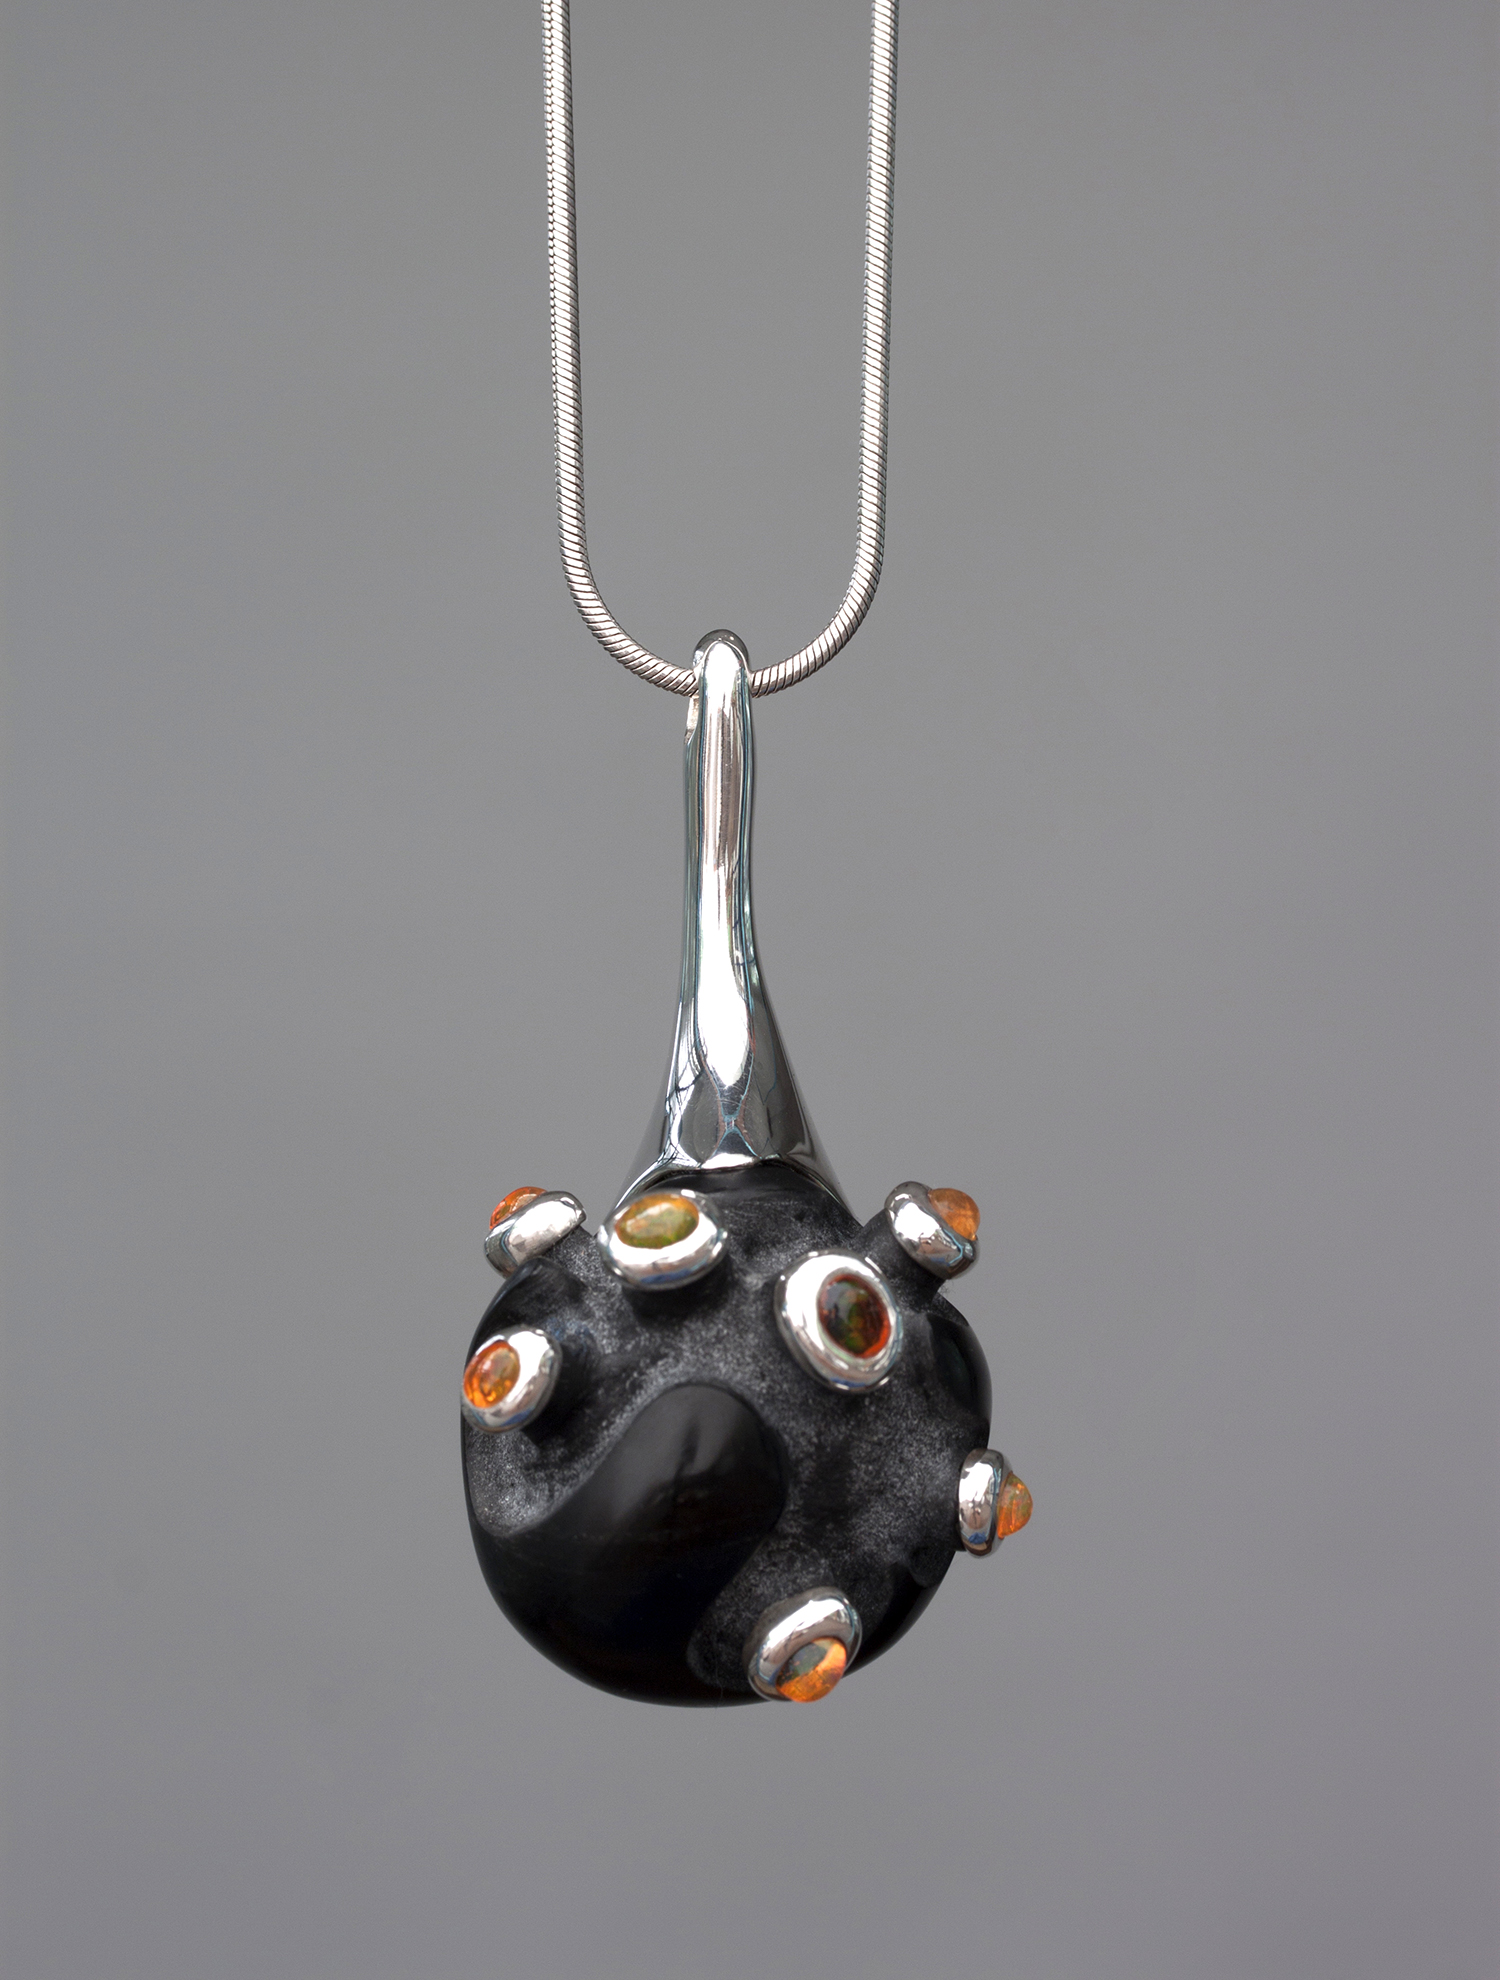 obsidian, fire opals, silver, pendant with marion friedmann gallery